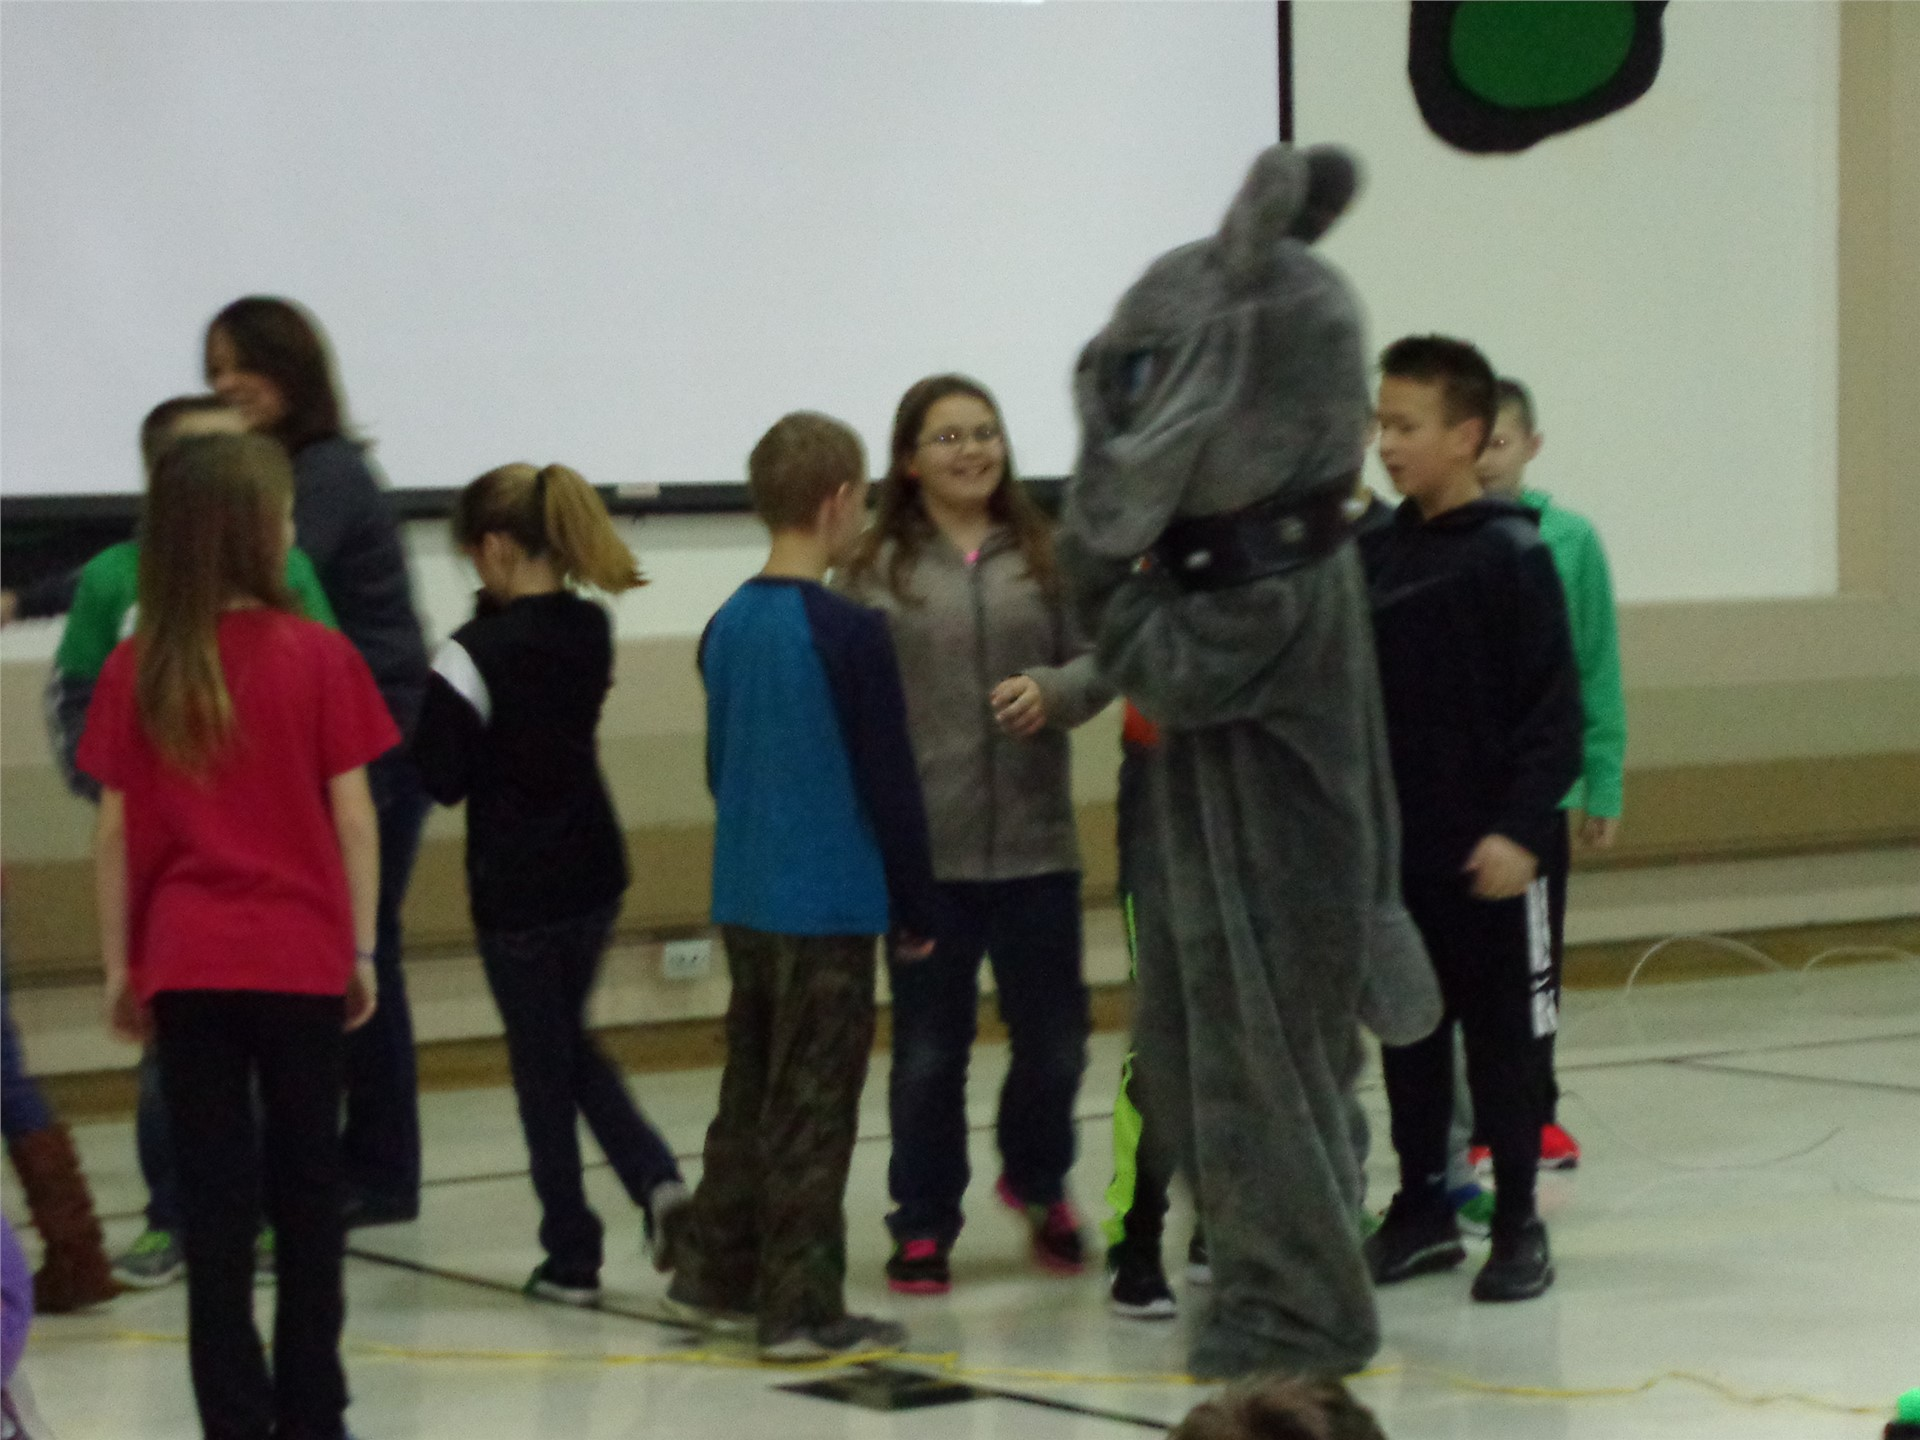 Celina's mascot came for a visit!